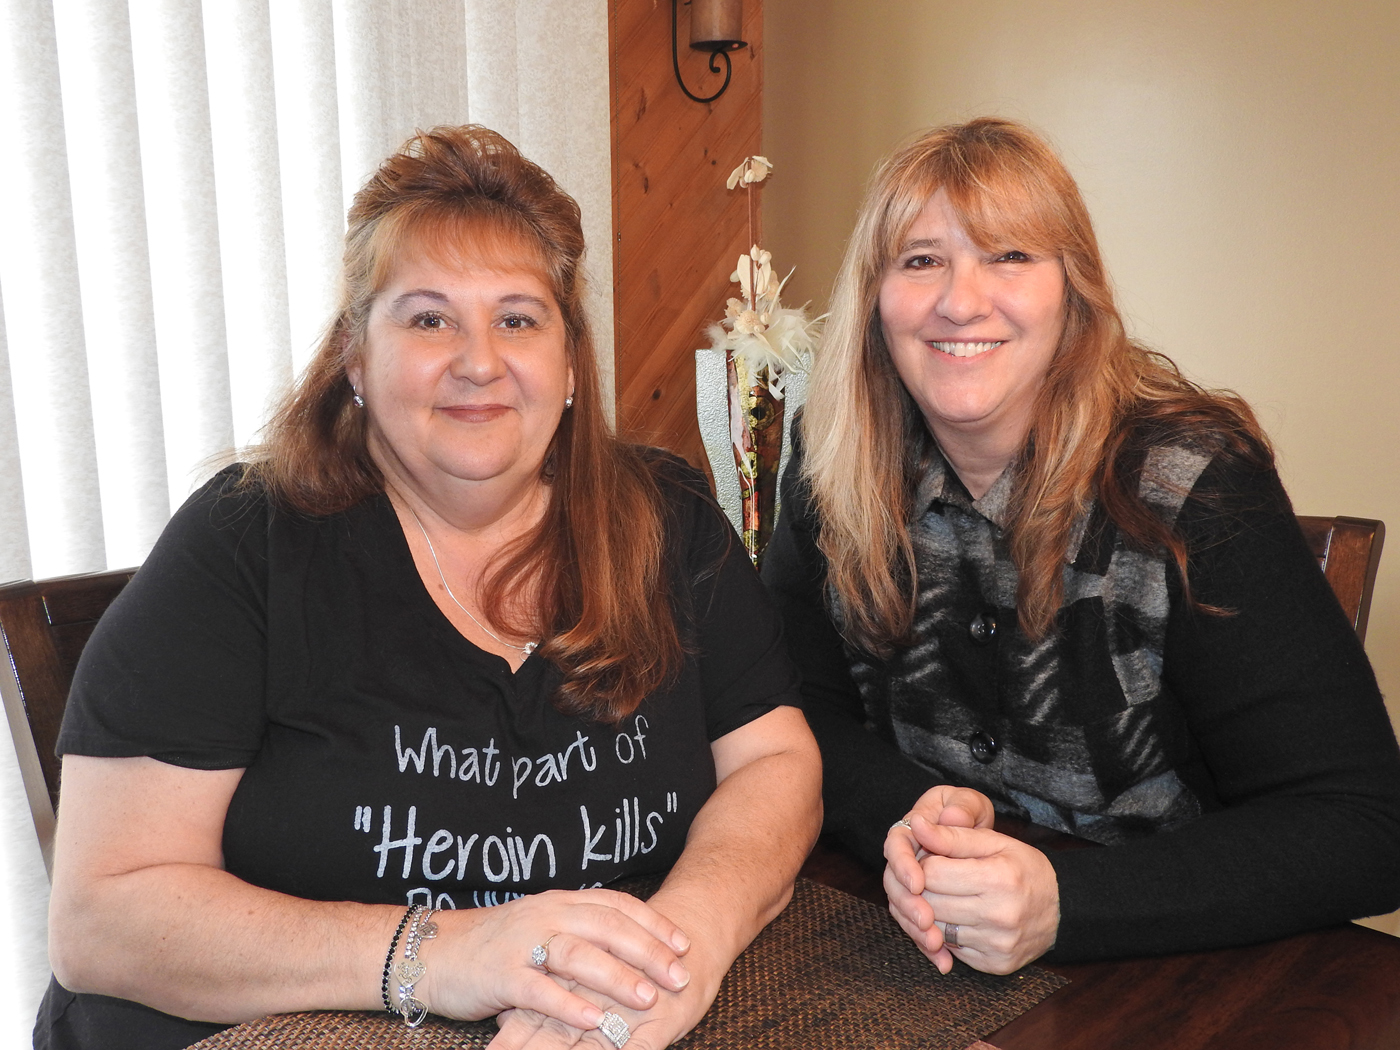 Maryann Marshall (left) and Lorie Fishell (right) are the founders of Tranquility of Hope. Photo by Karen Fien